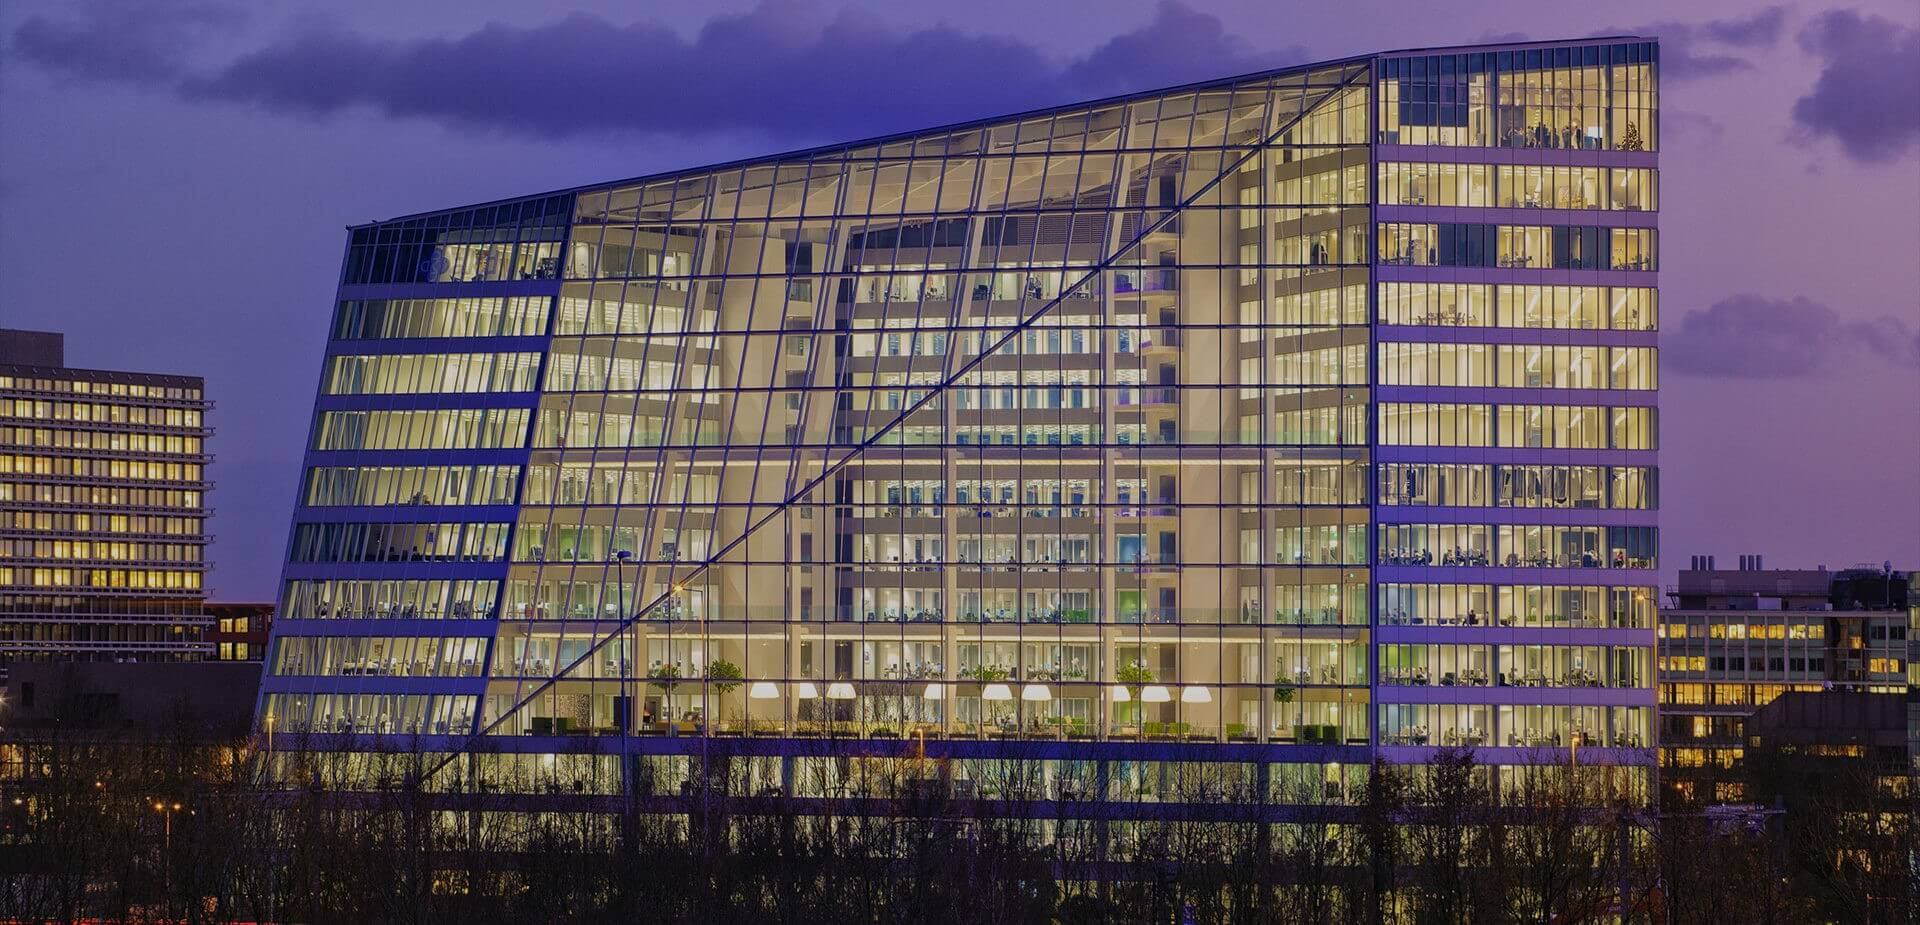 Light as a Service in the World's Greenest Building